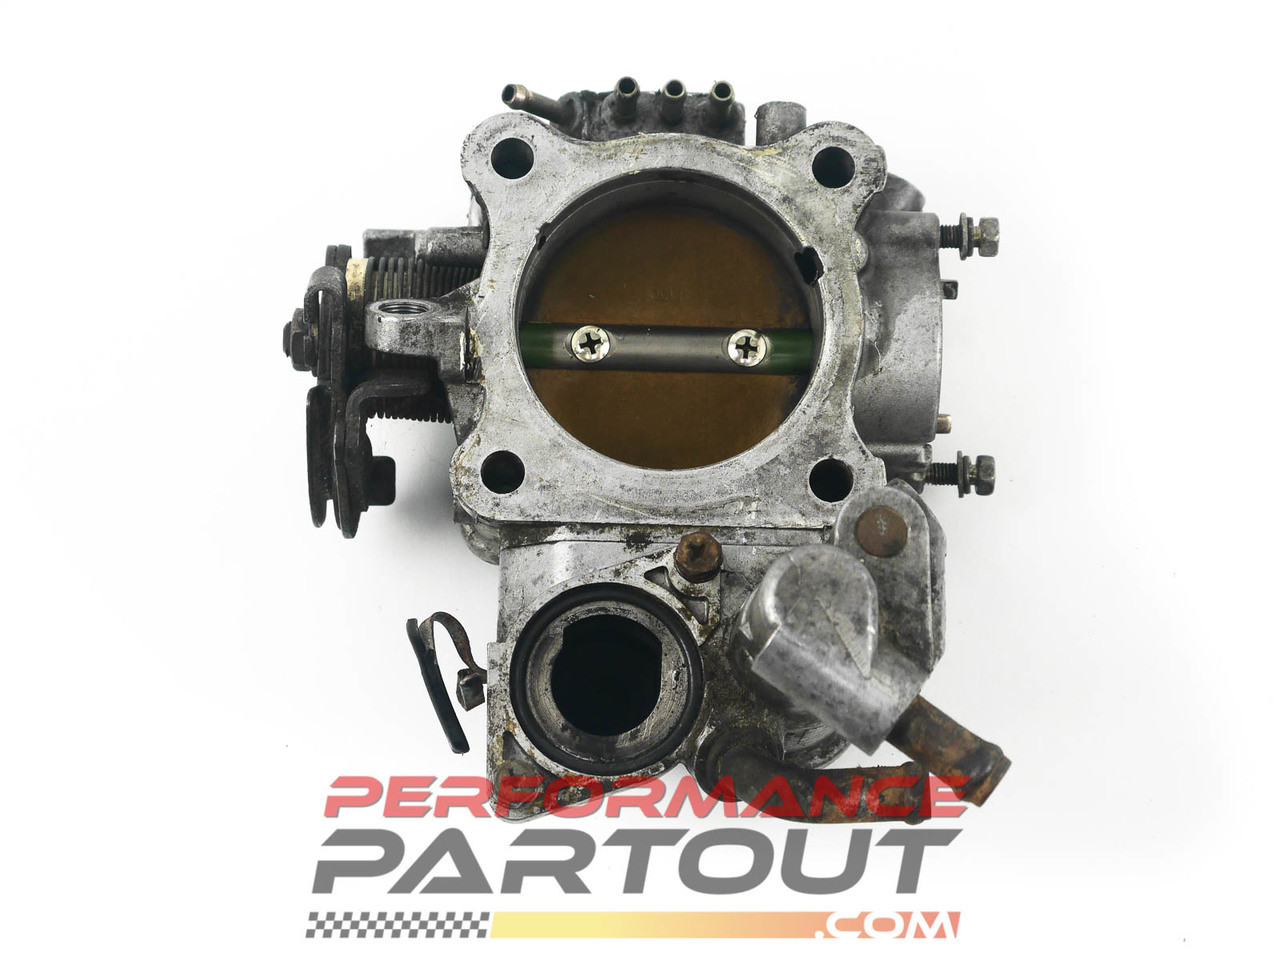 Throttle body 91-94 dsm